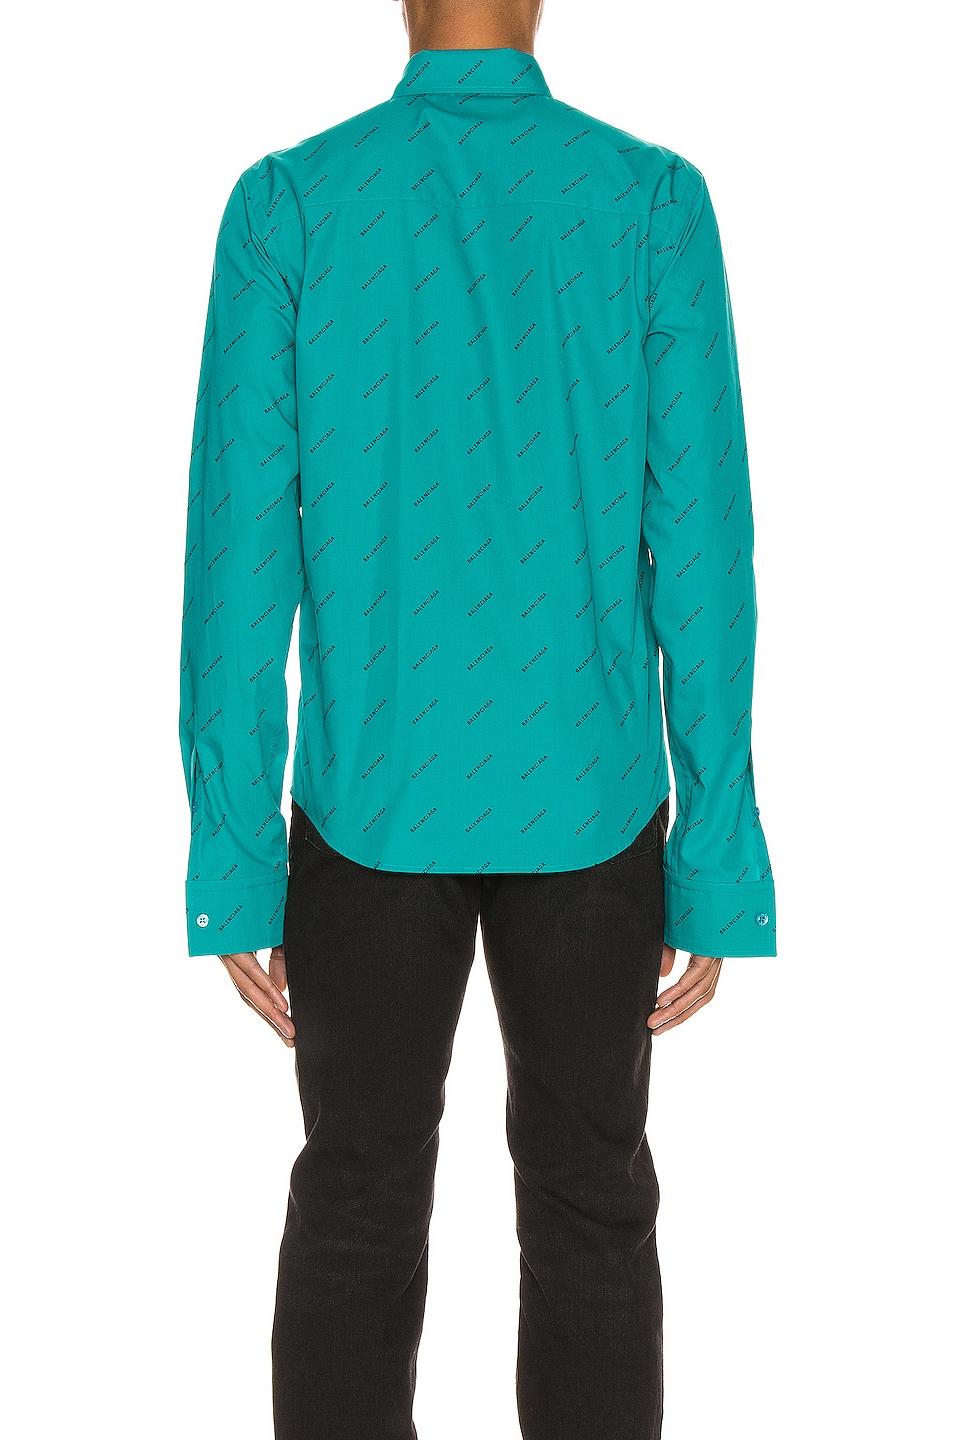 Image 3 of Balenciaga Fitted Shirt in Turquoise & Black